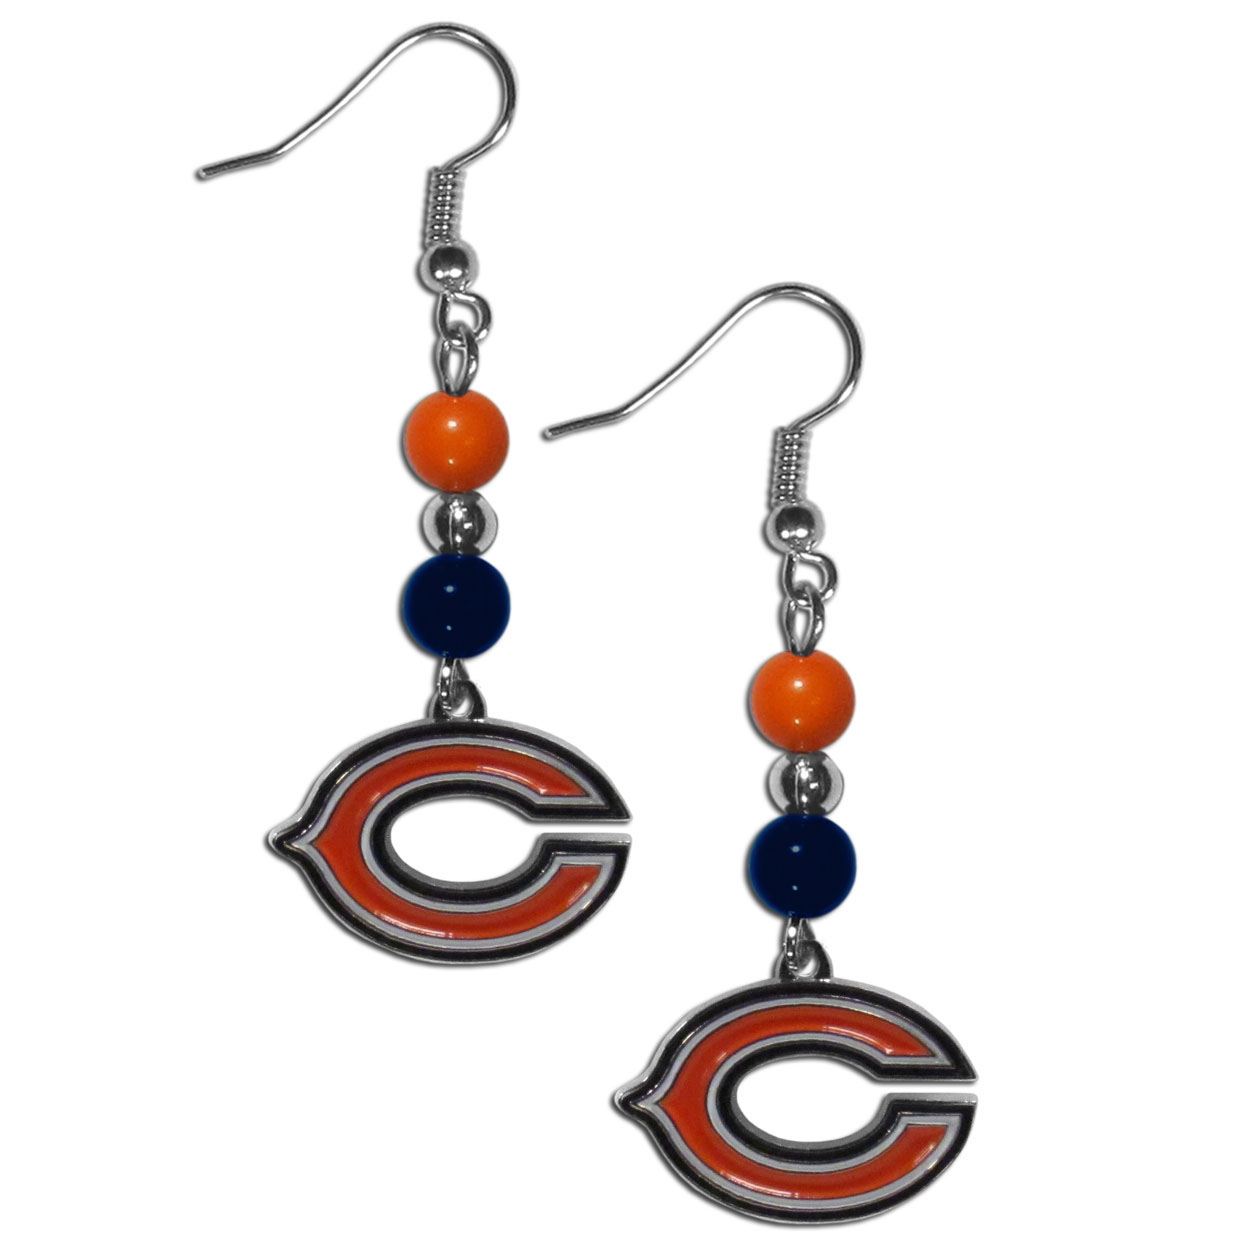 Chicago Bears Fan Bead Dangle Earrings - Love your team, show it off with our Chicago Bears bead dangle earrings! These super cute earrings hang approximately 2 inches and features 2 team colored beads and a high polish team charm. A must have for game day!